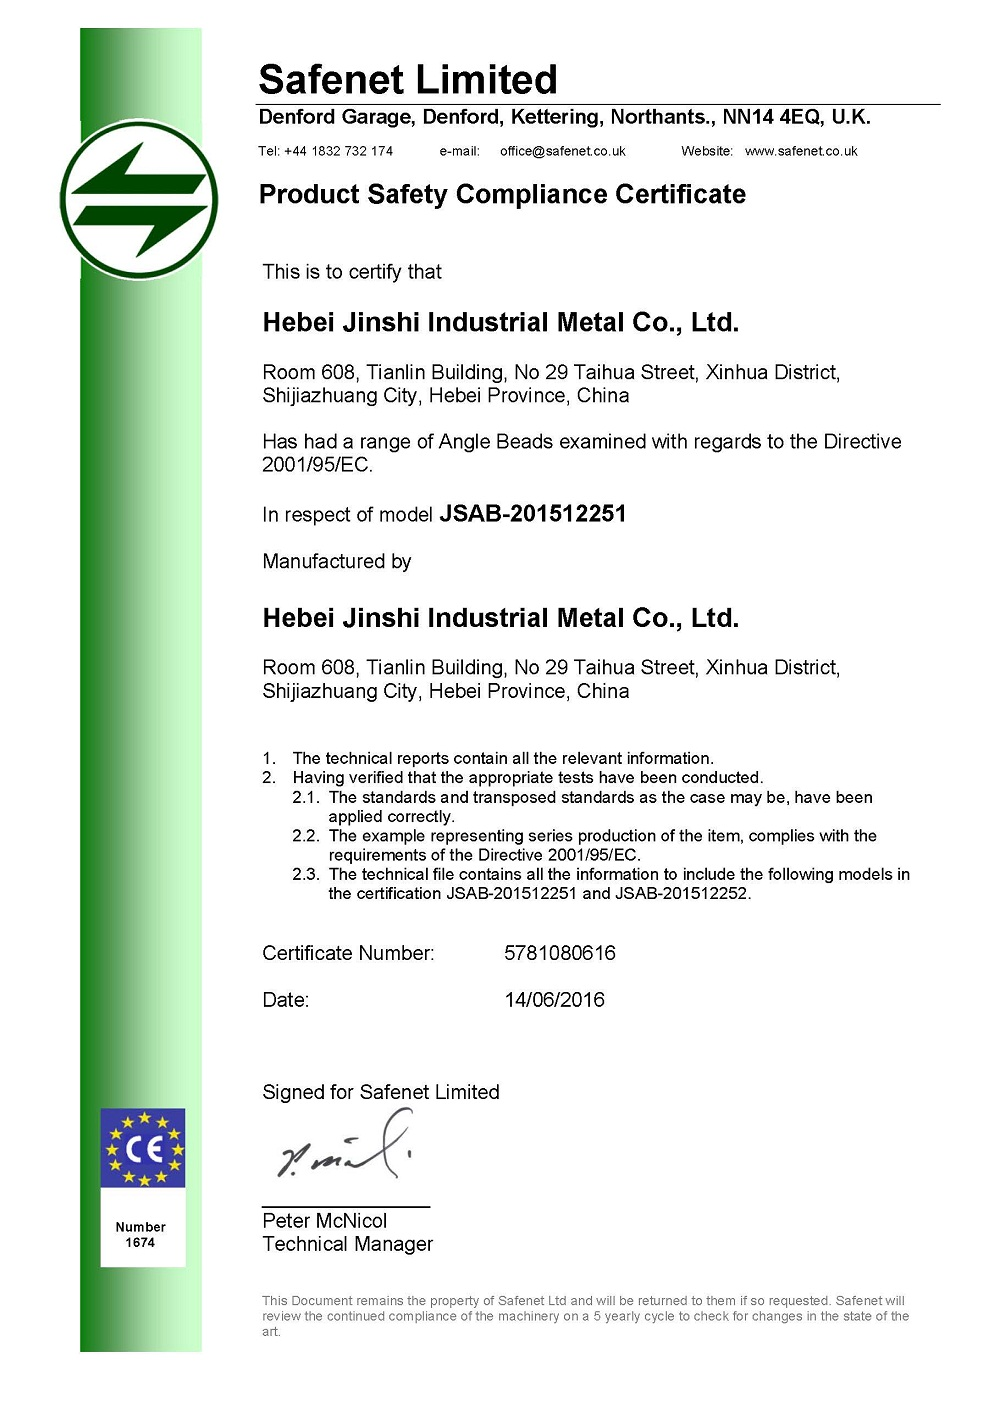 CE Certificate for Angle Bead